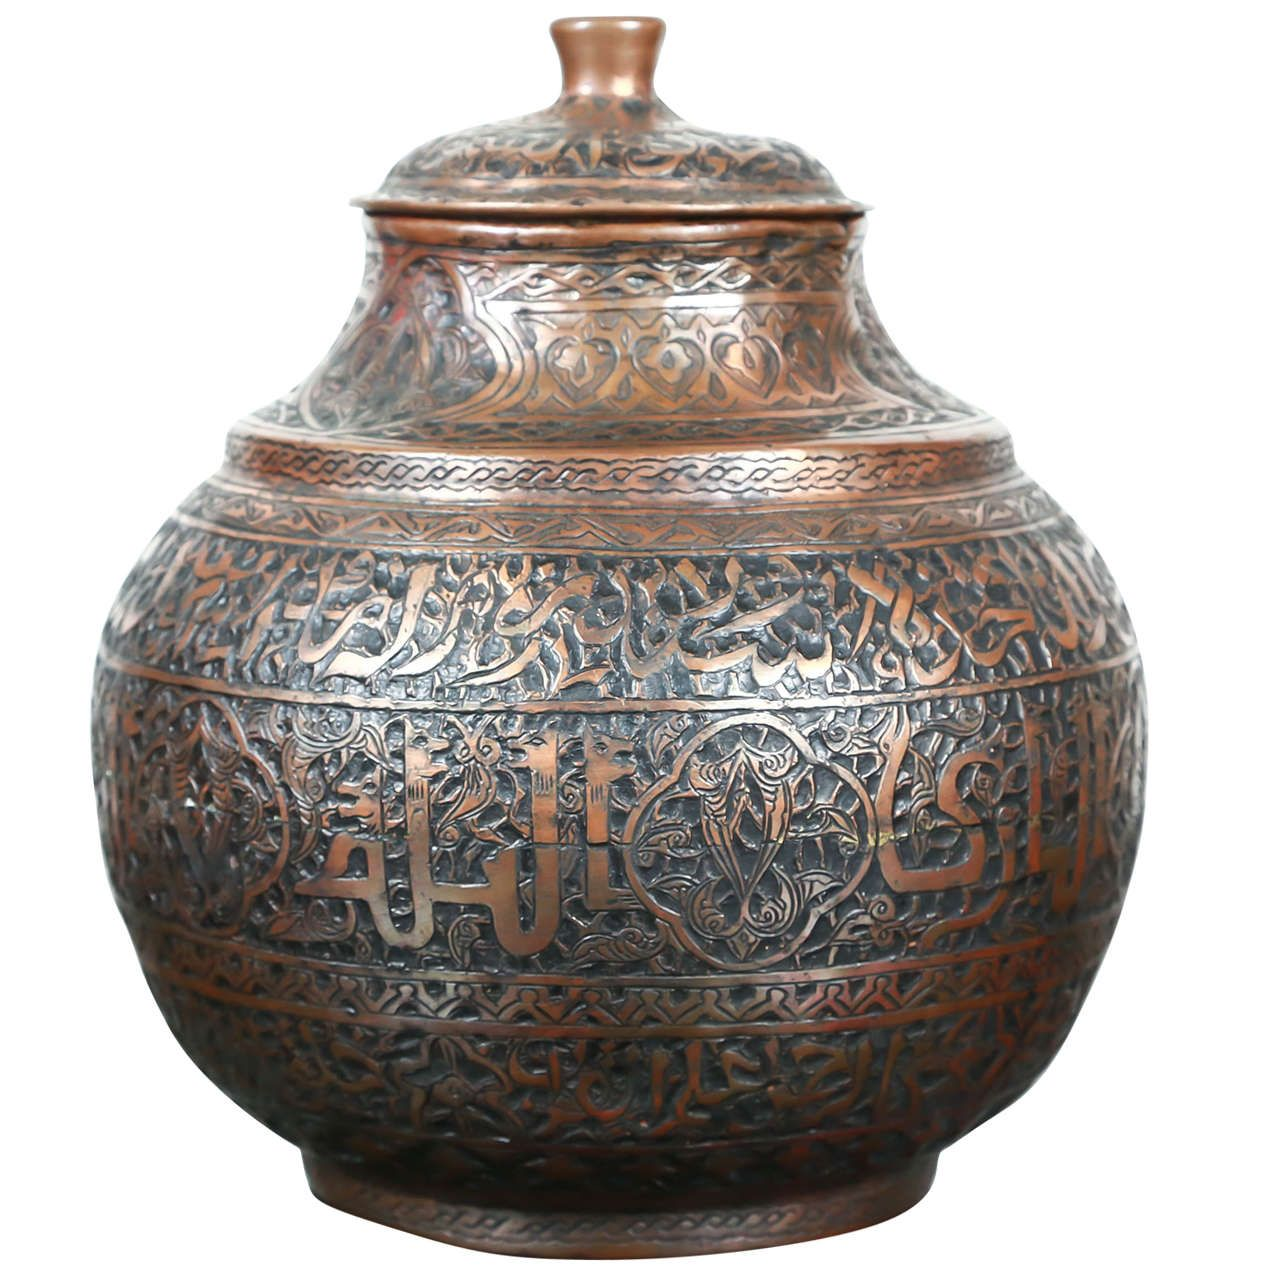 Decorative Urns With Lids Fascinating Persian Mameluke Tinned Copper Jar With Lid  Persian Decorative Decorating Inspiration